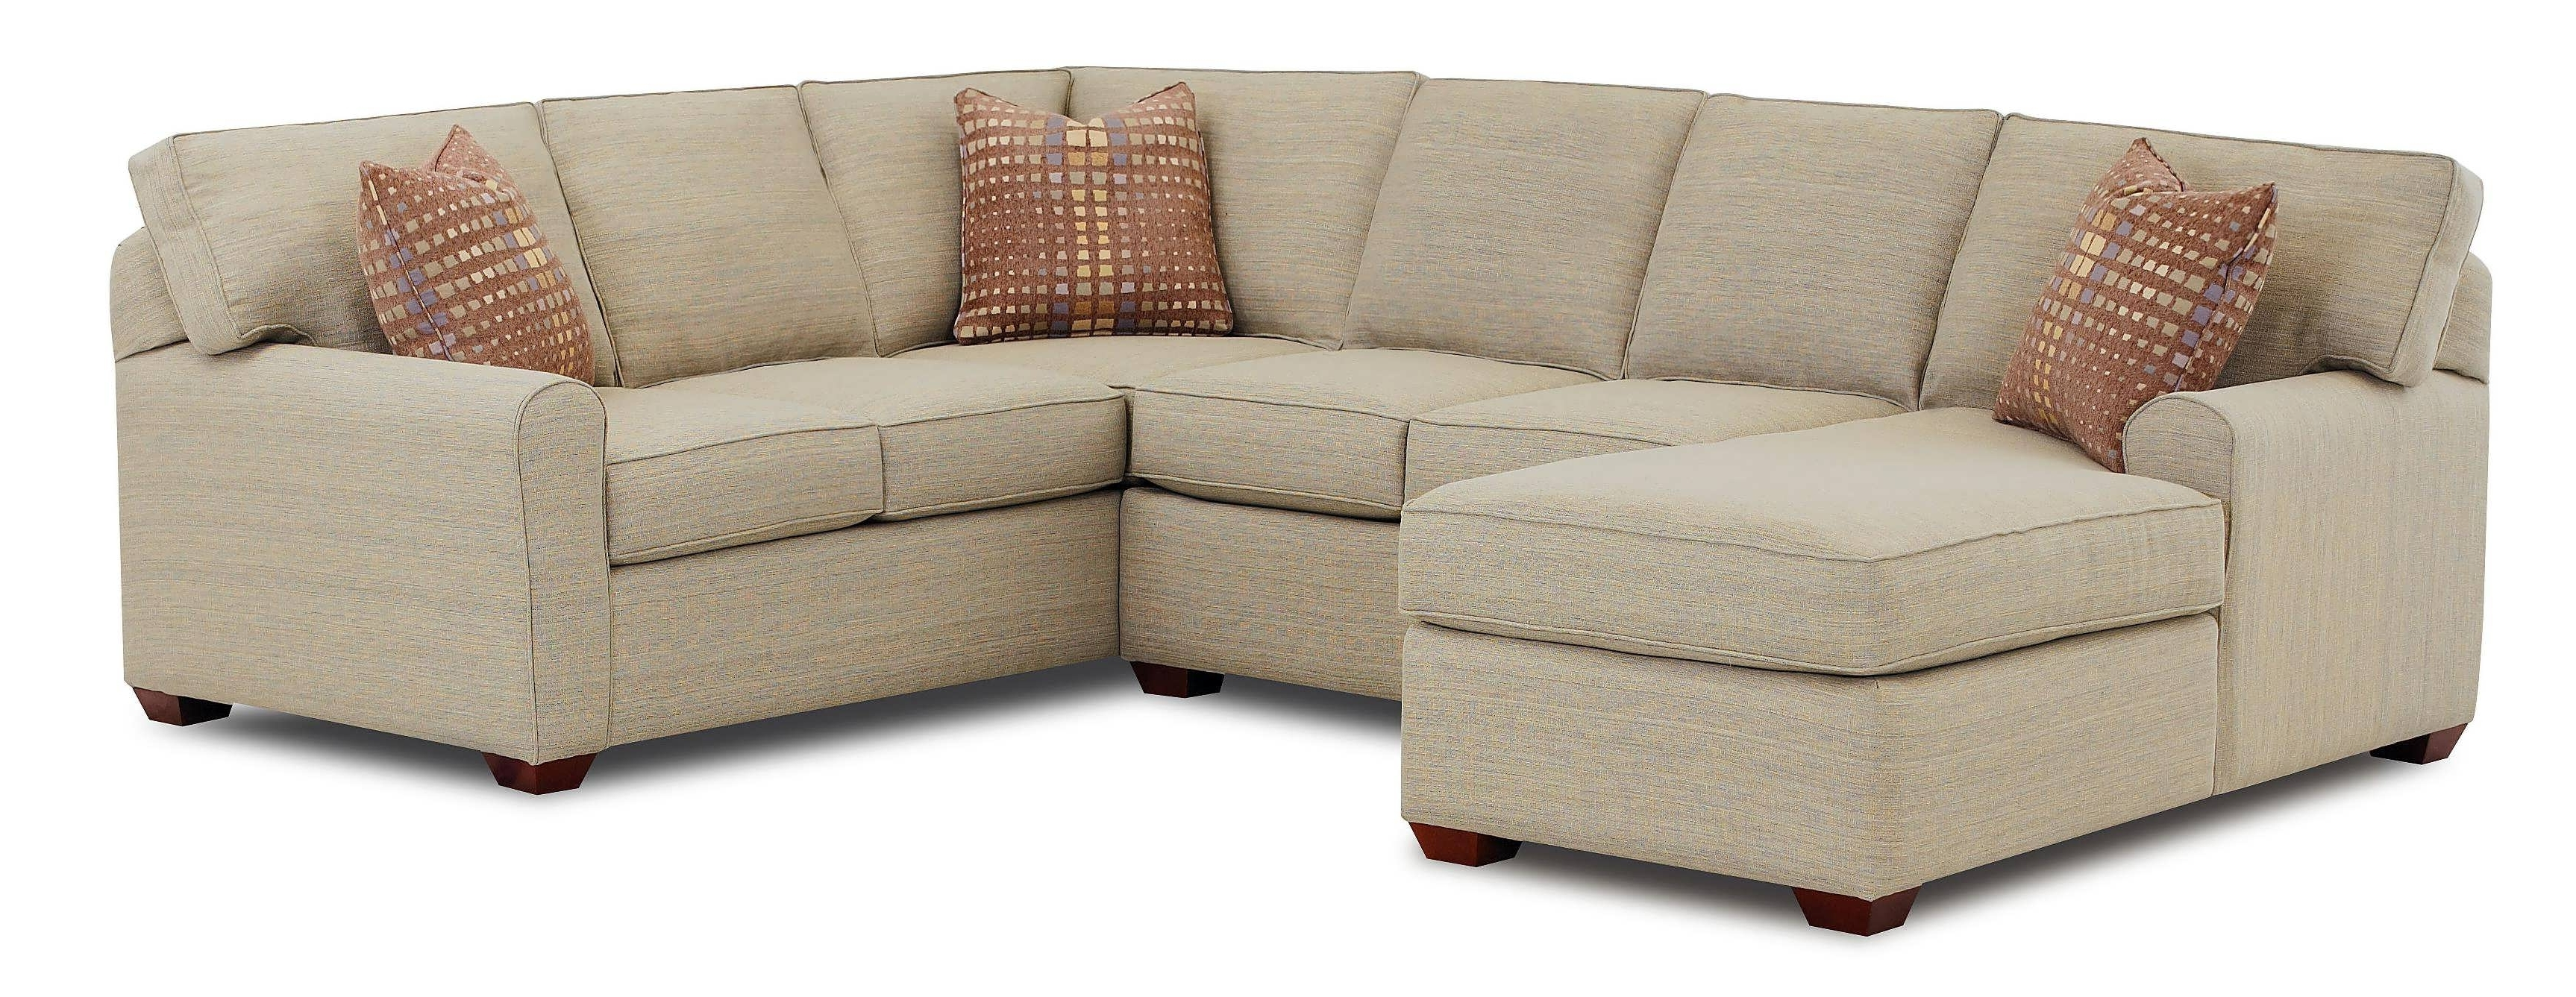 Well Liked Sectional Sofas With Chaise Lounge Intended For Sofa : Chaise Lounge Couch With Chaise Cheap Sectional Sofas (View 3 of 15)